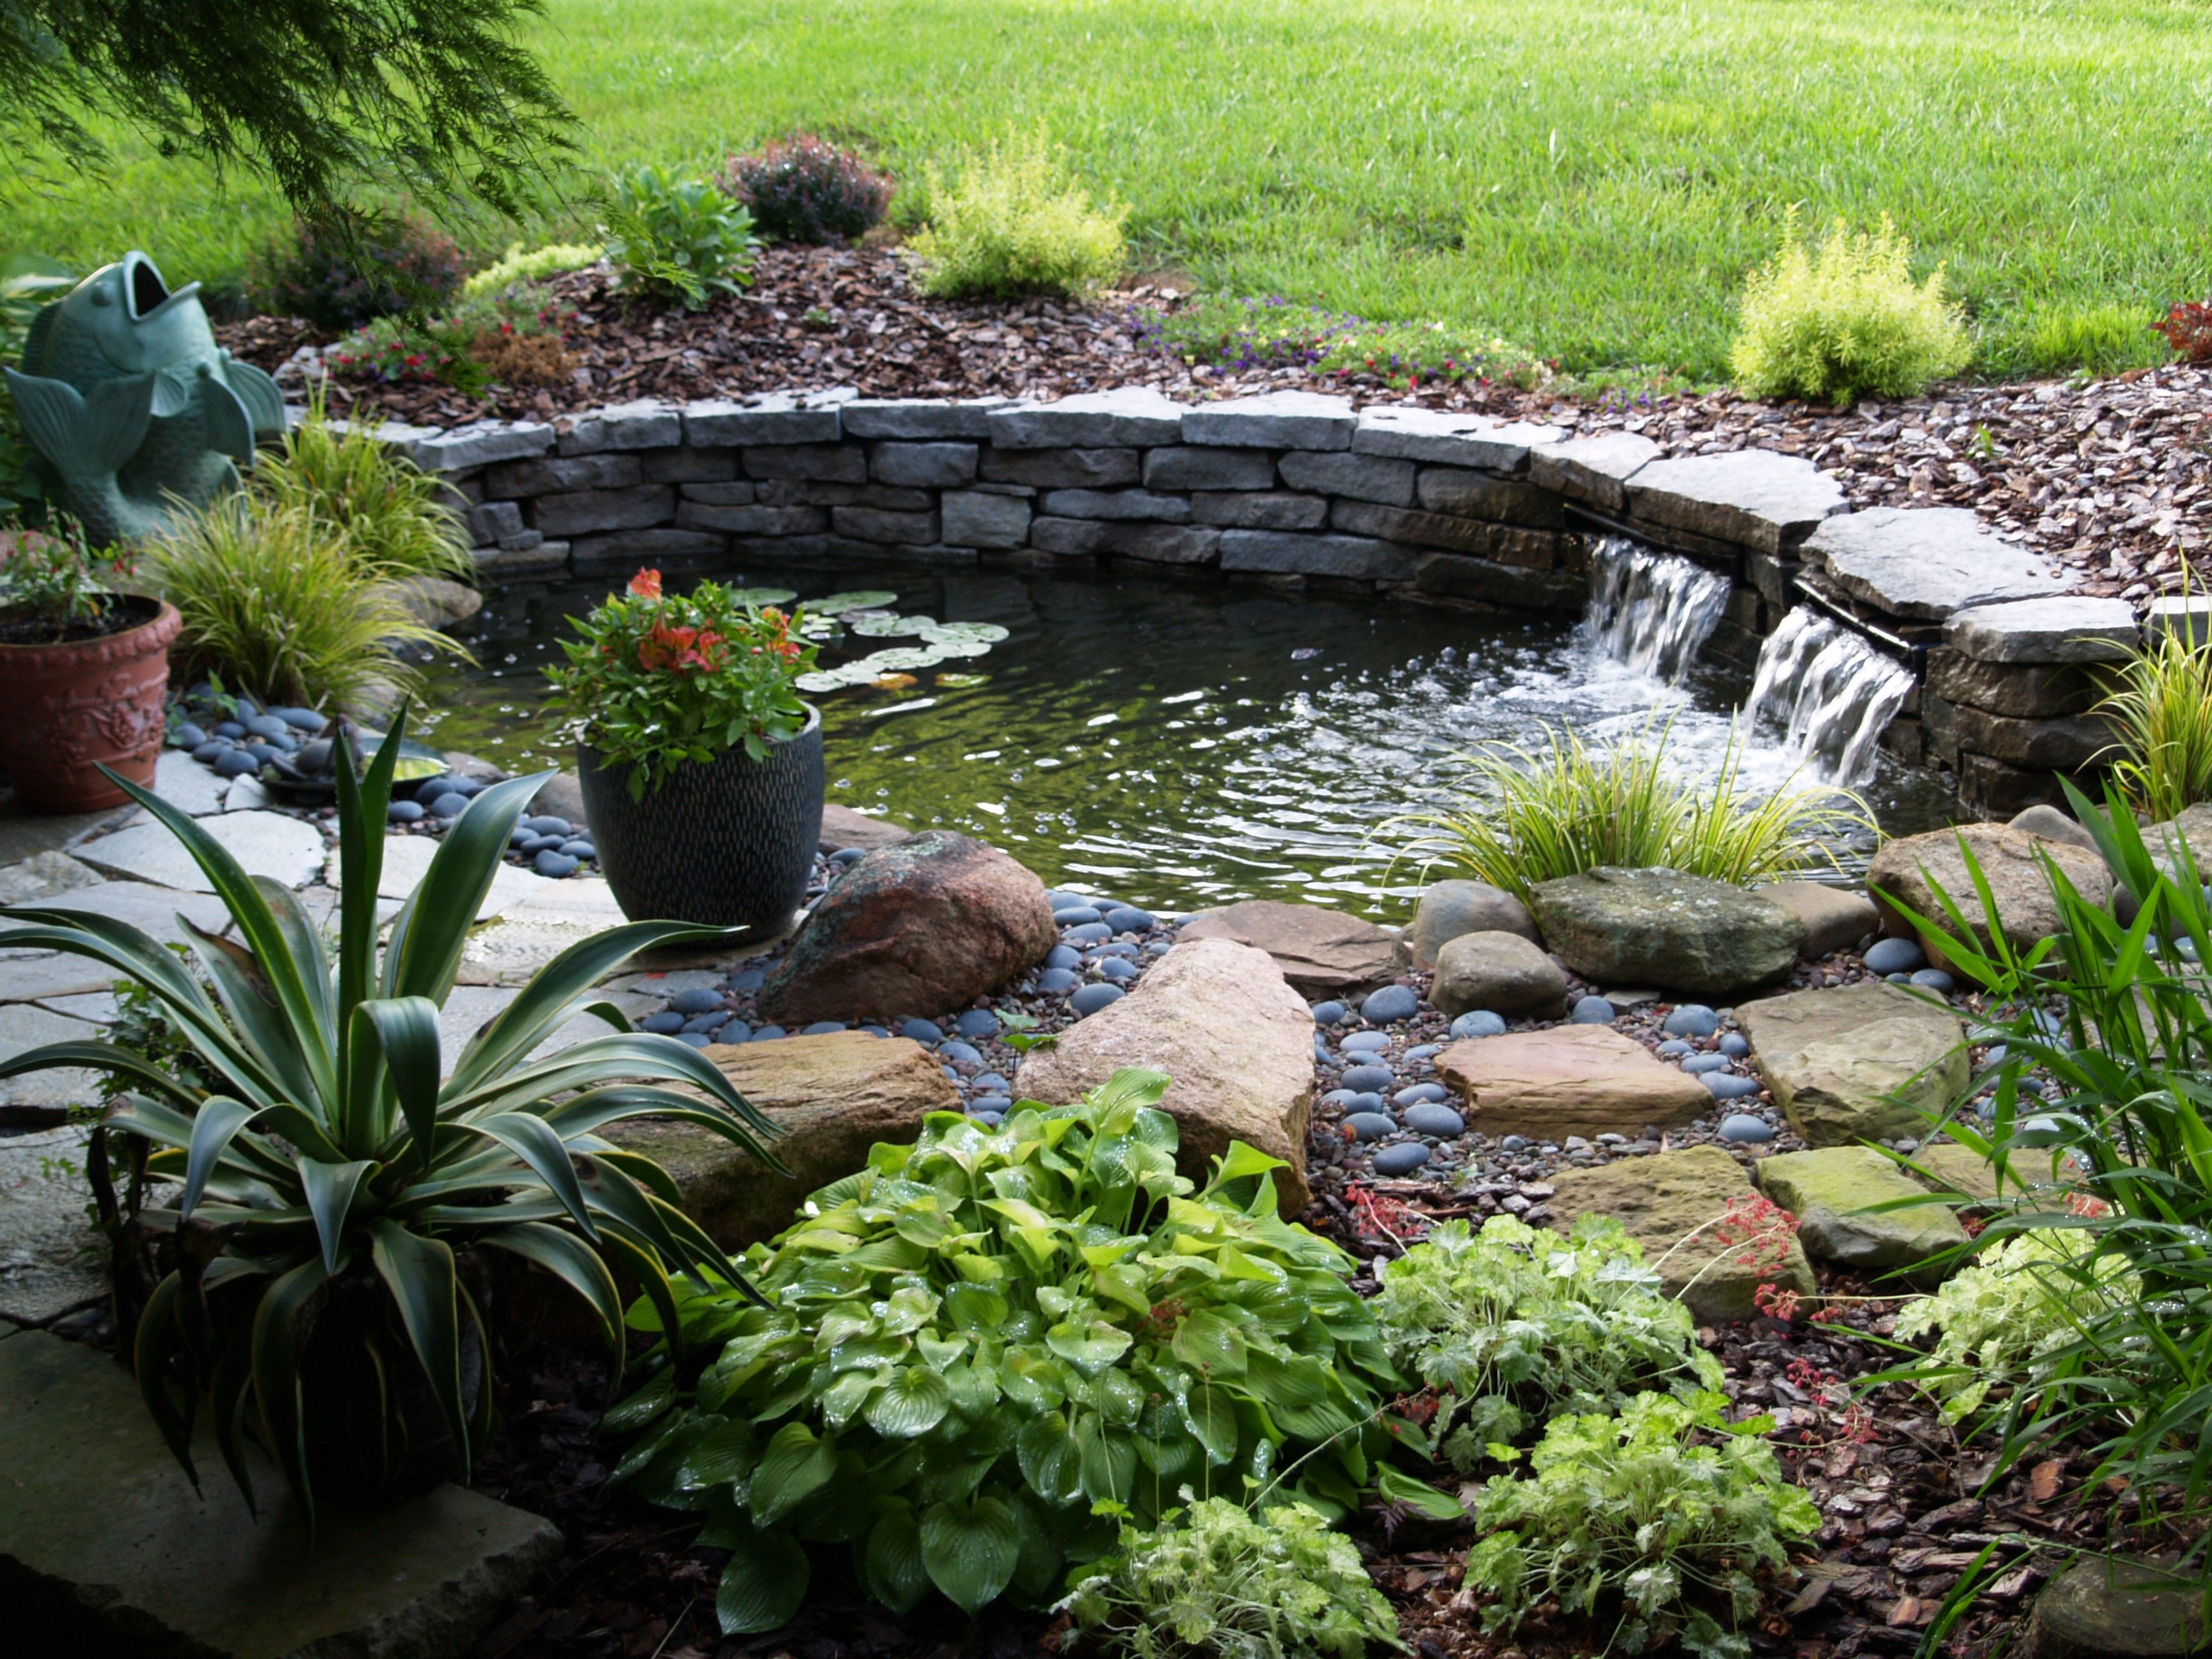 Cool backyard fish pond design ideas modern interior Garden pond ideas